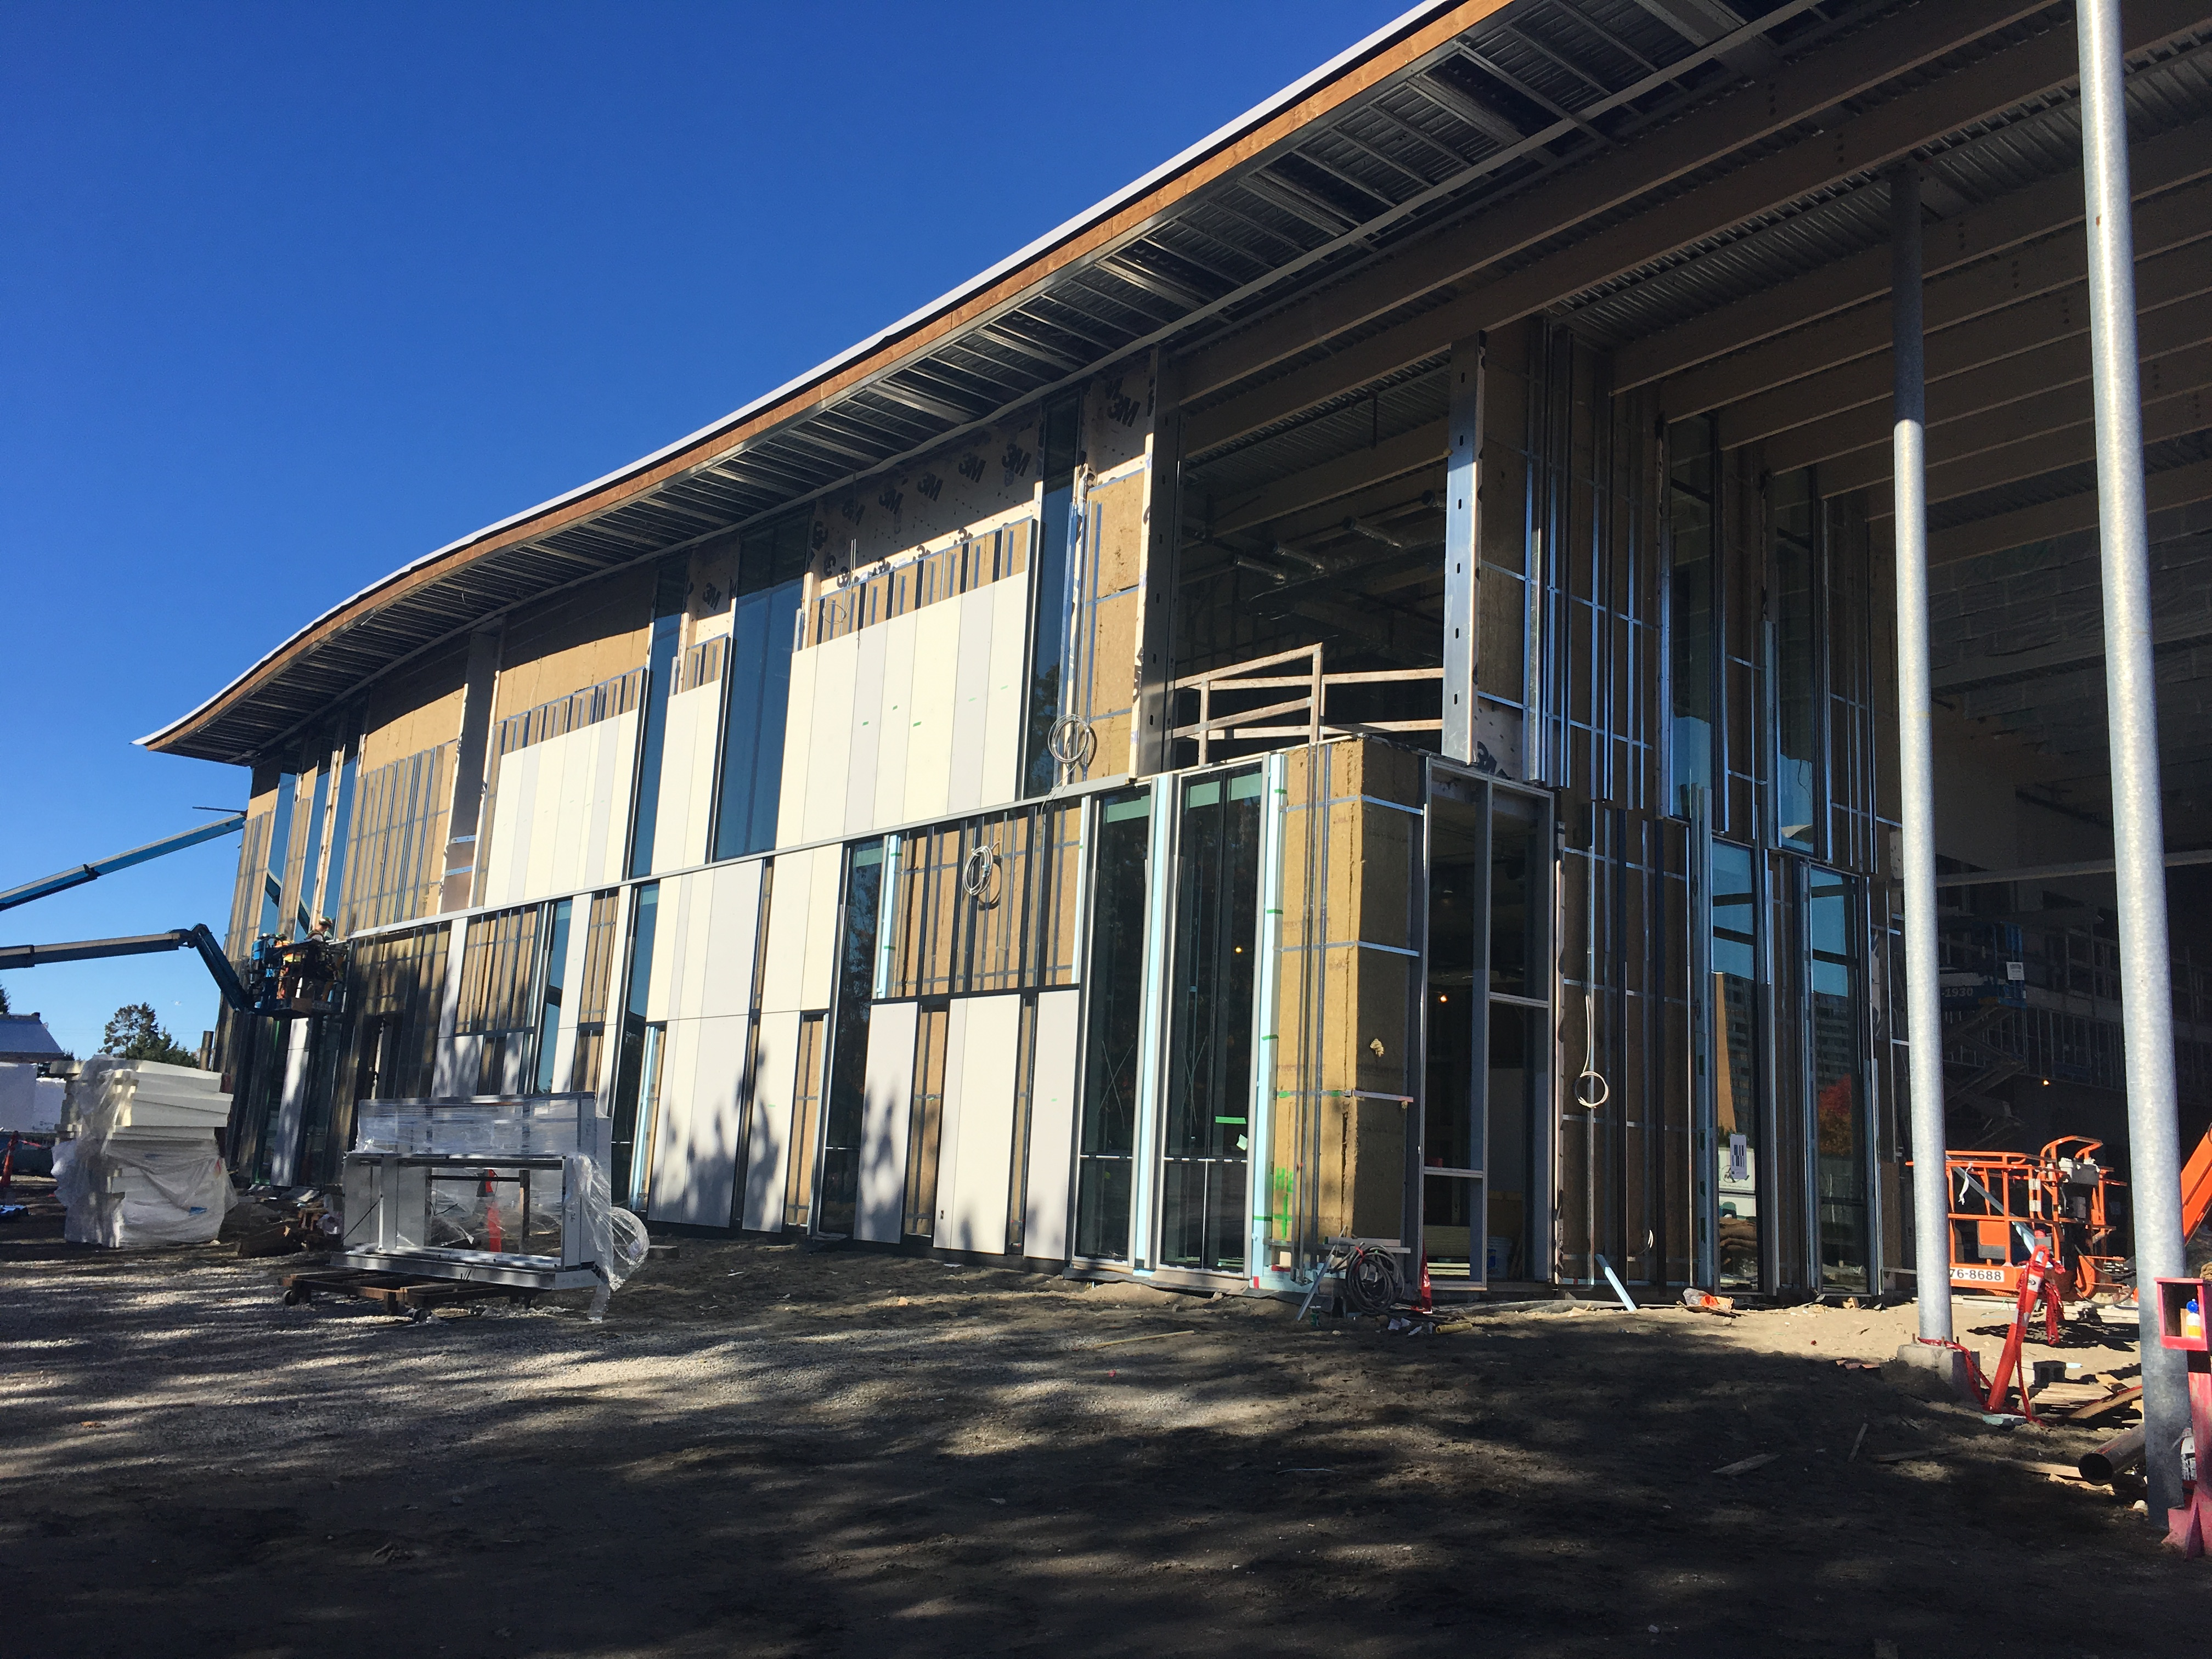 Installation of windows and siding on south east corner of the building - November 2017